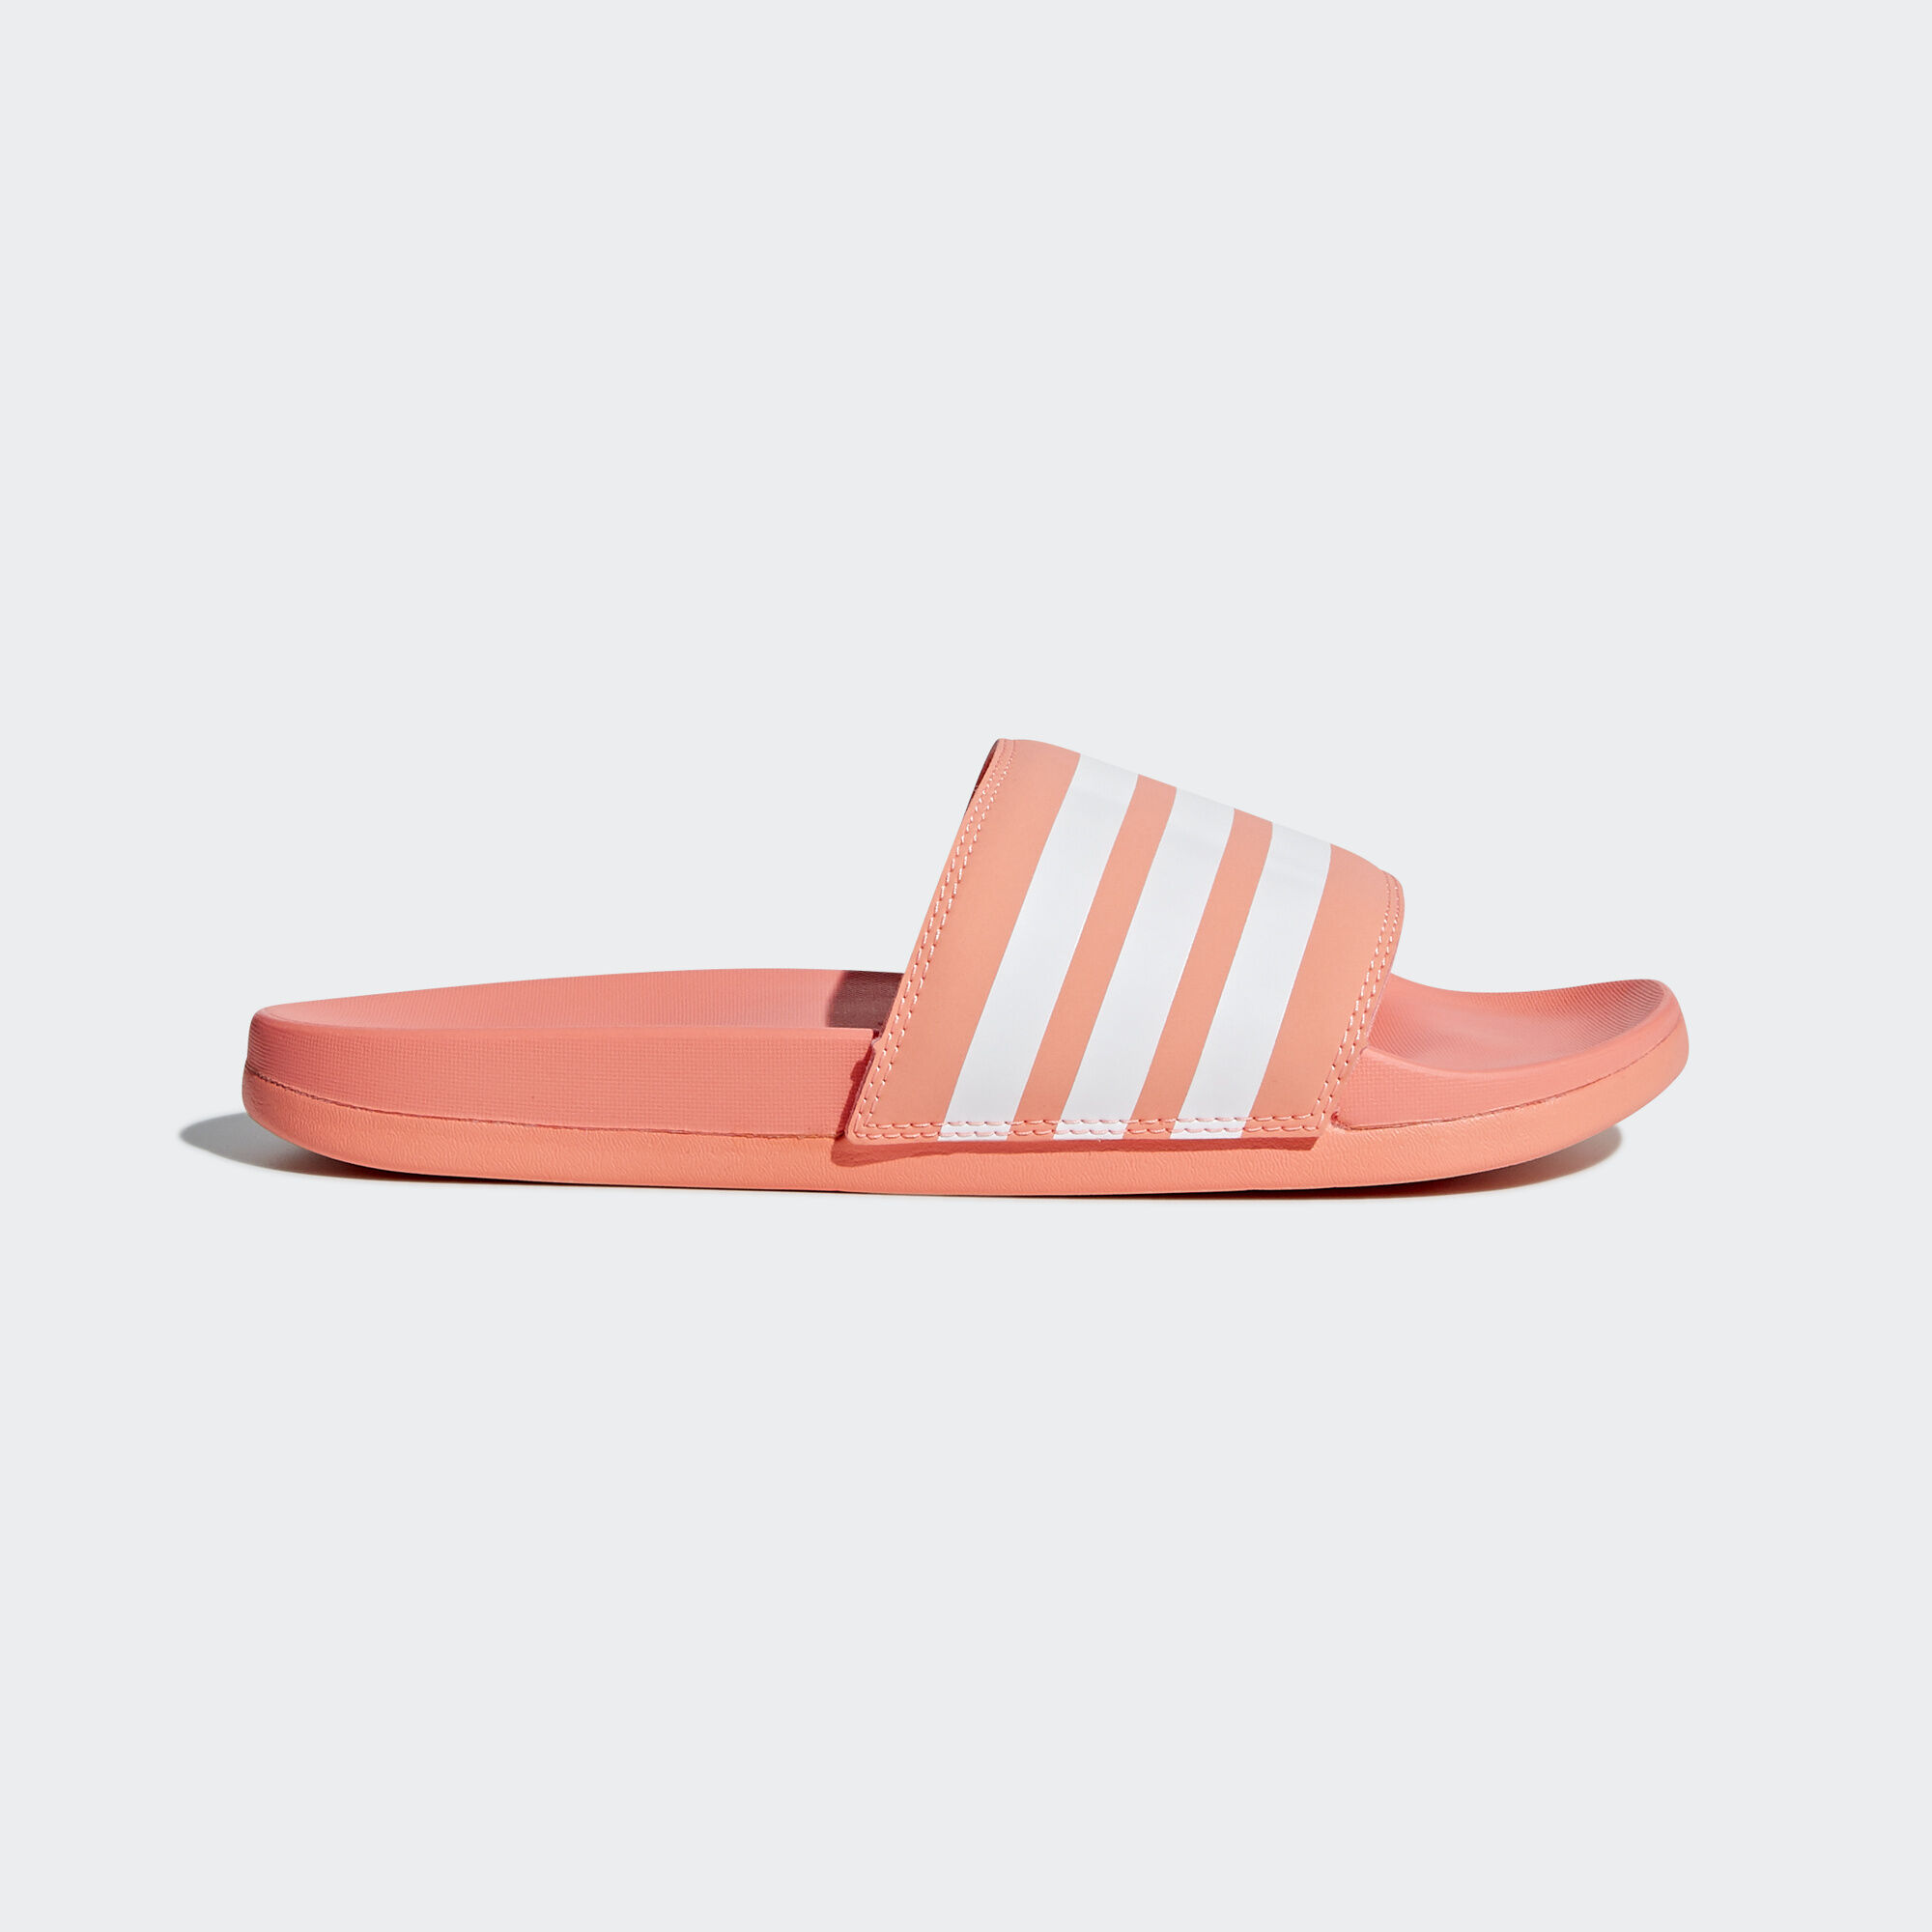 wholesale dealer 63dc5 1e41b adidas - Adilette Cloudfoam Plus Stripes Slides Pink  Ftwr White  Chalk  Coral B43528. Women Essentials